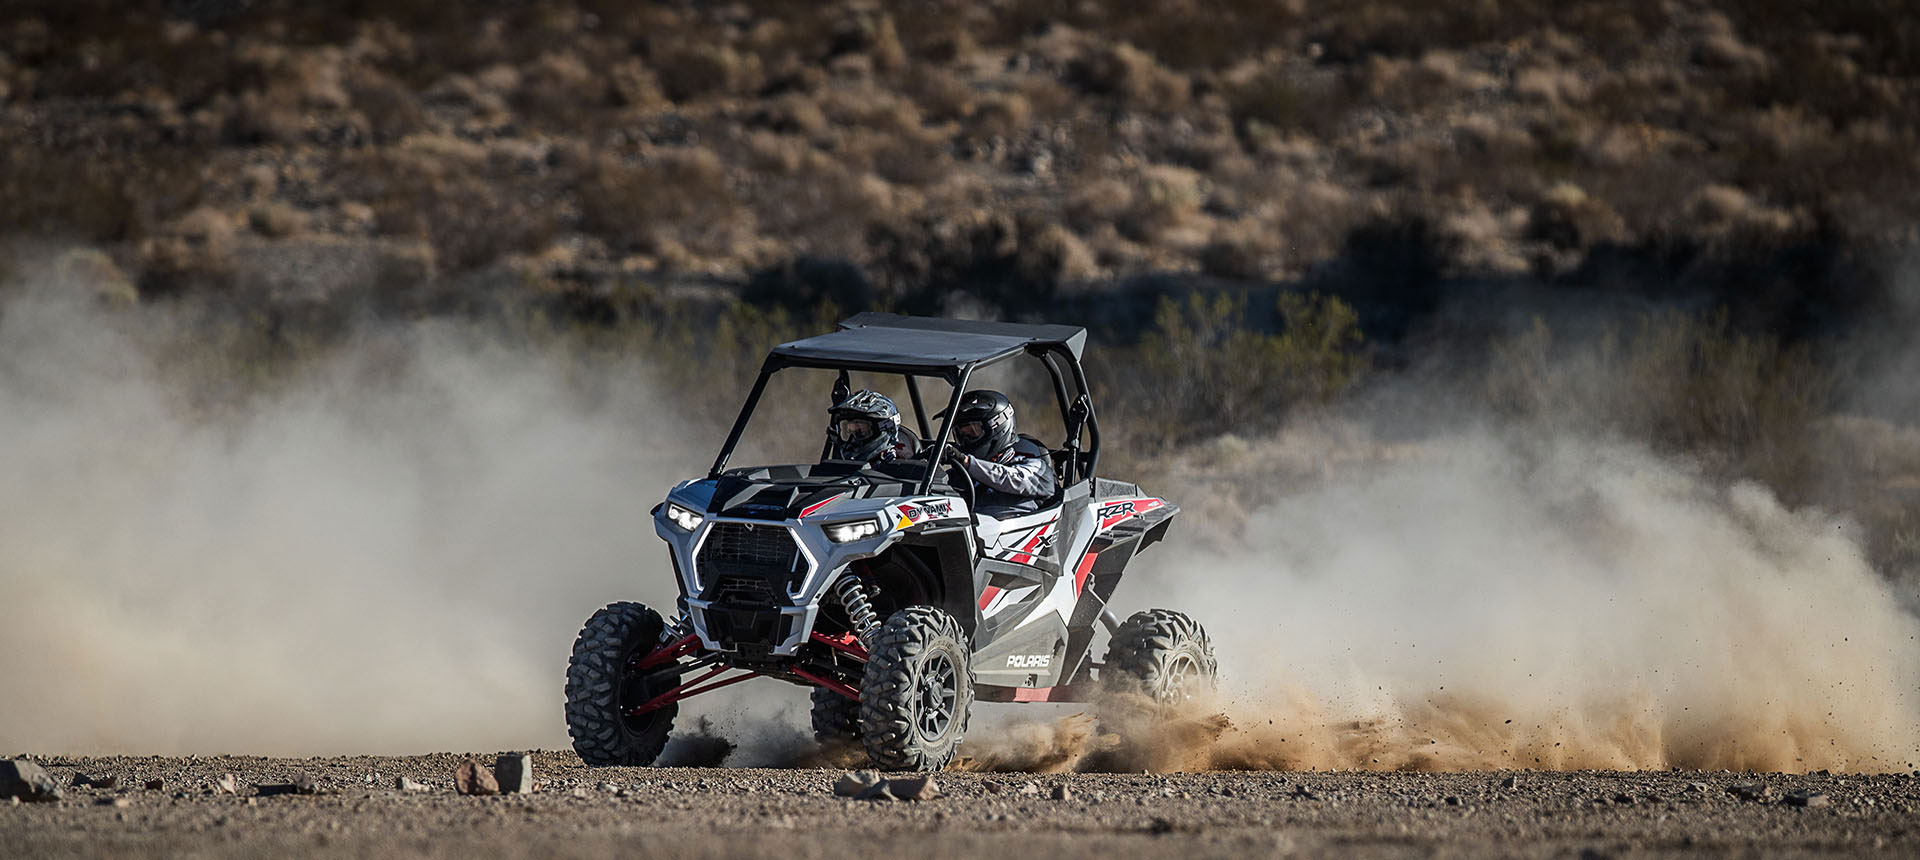 2019 Polaris RZR XP 1000 in Hazlehurst, Georgia - Photo 7